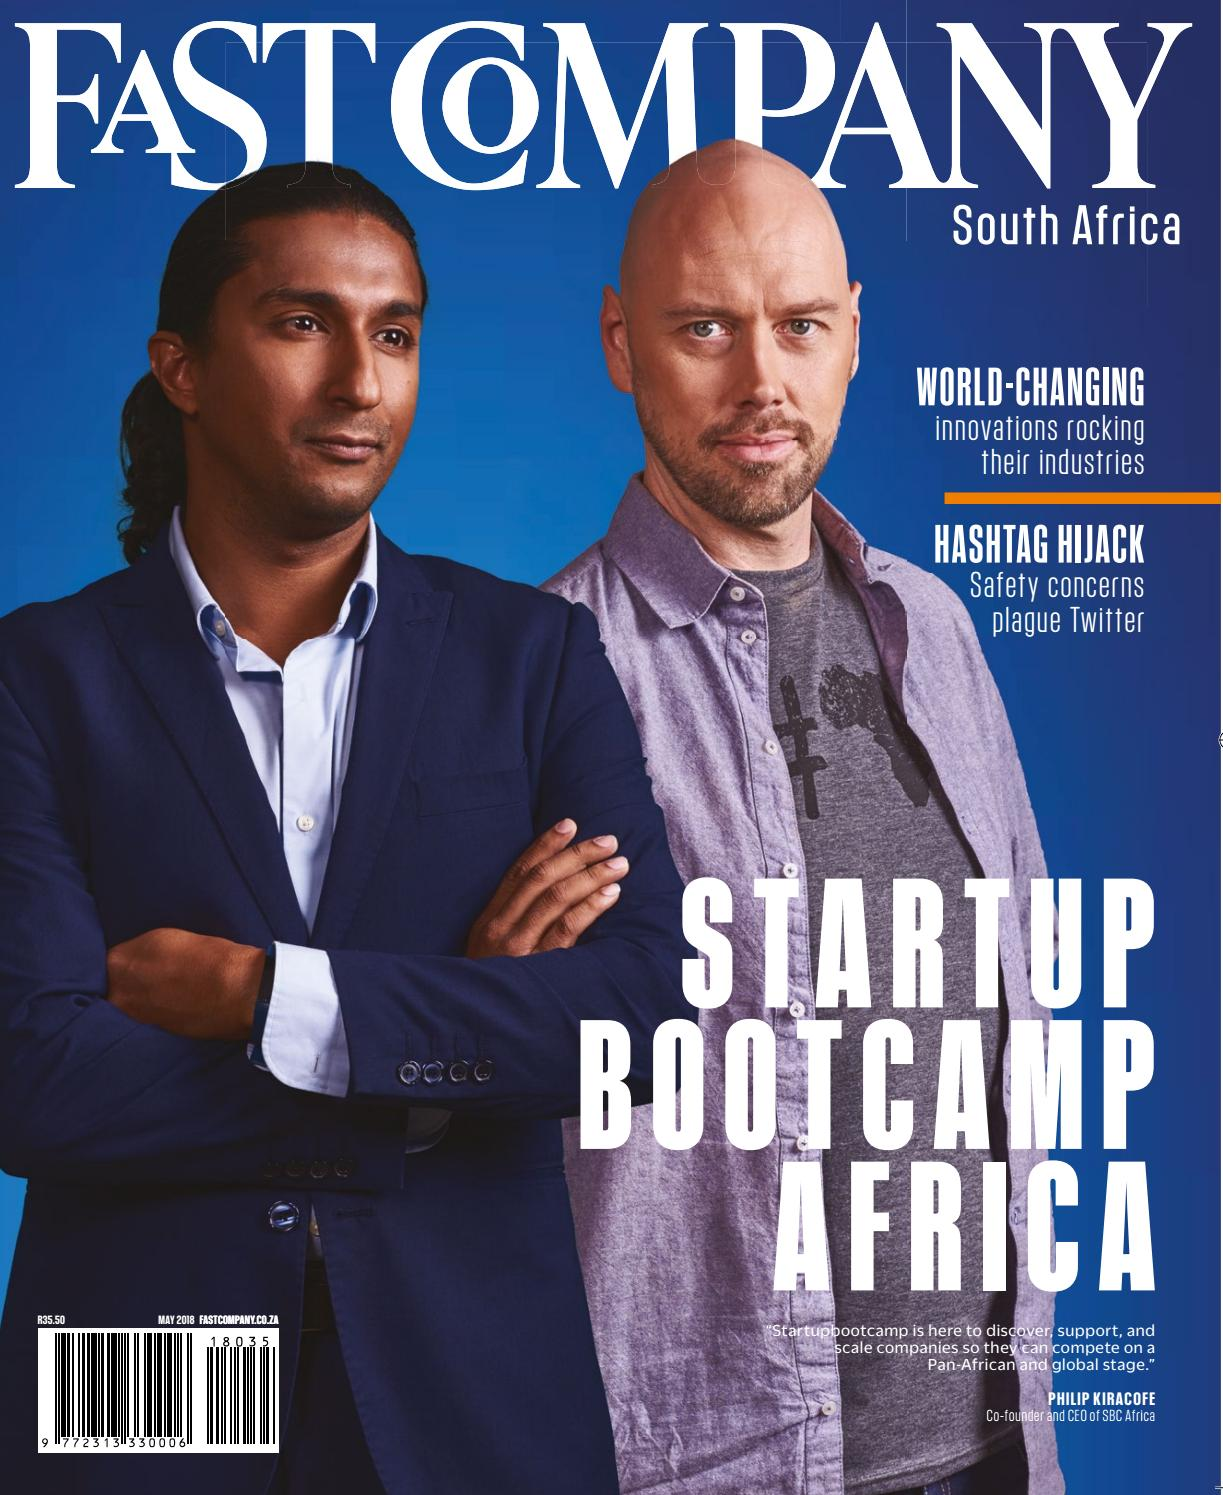 cca406bdb3f0 Fast Company SA - May 2018 issue 35 by Fast Company SA - issuu